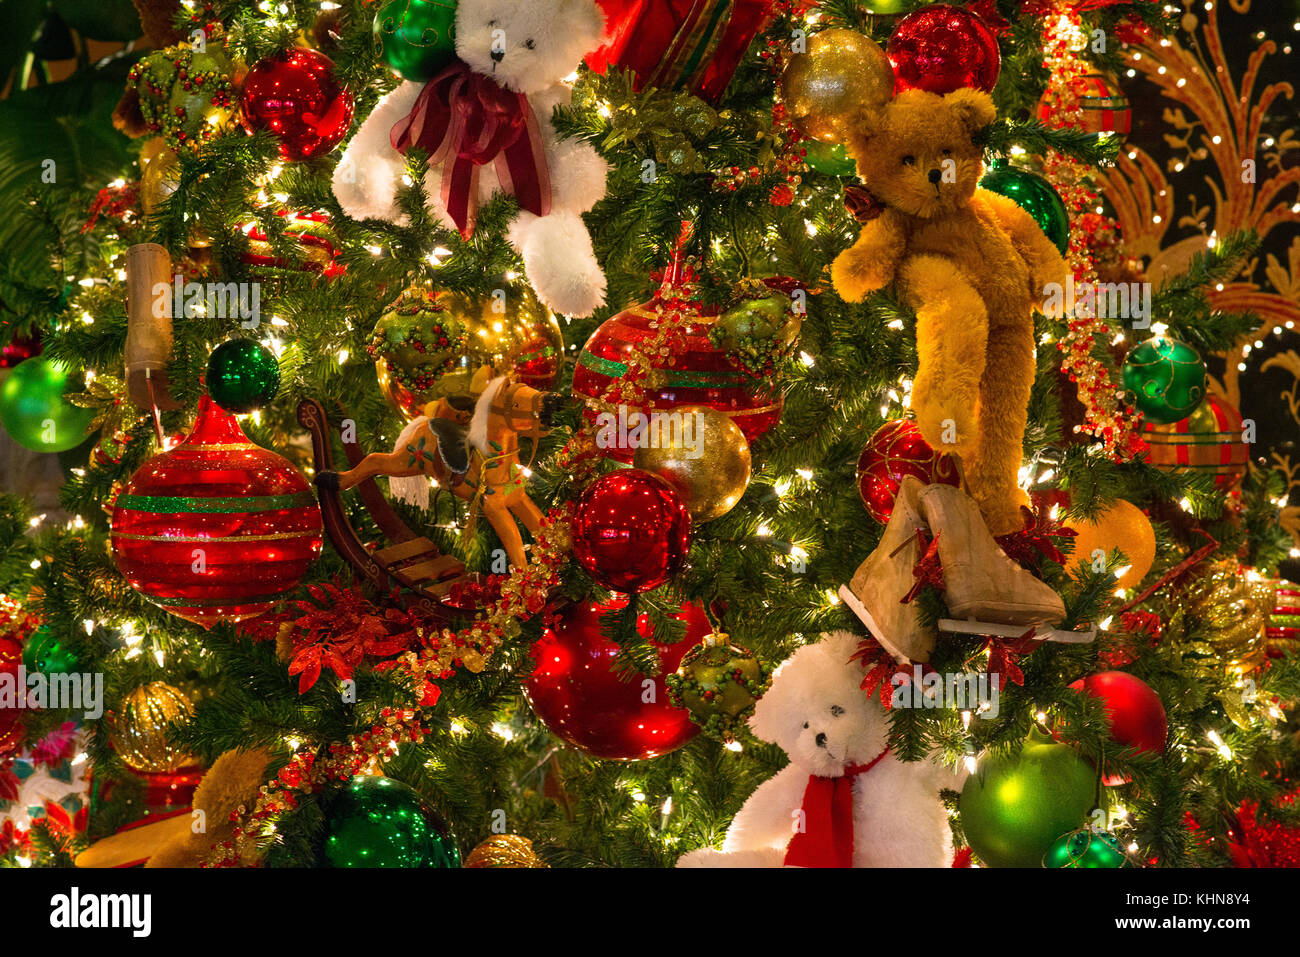 Christmas Texture Of Multi Colors Red Blue Green Golden Glitter Ornaments And Teddy Bears Placed Against The Backdrop Of Damask Pattern Wall